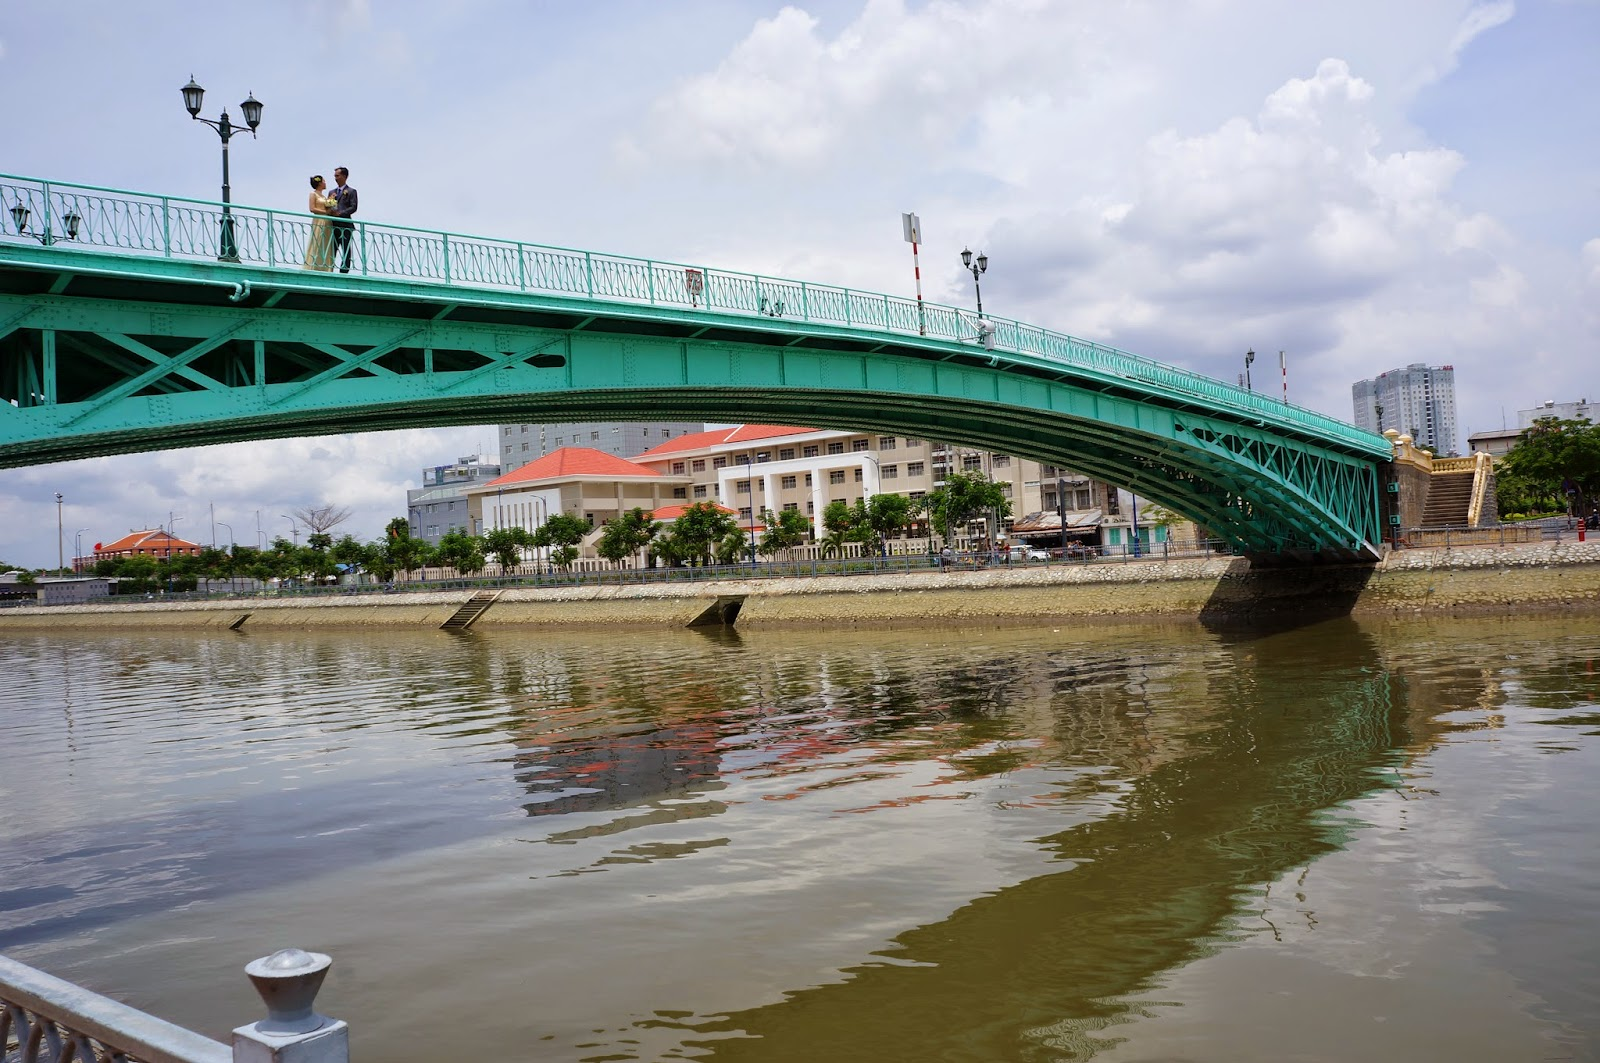 Mong Bridge, a popular place for wedding photography